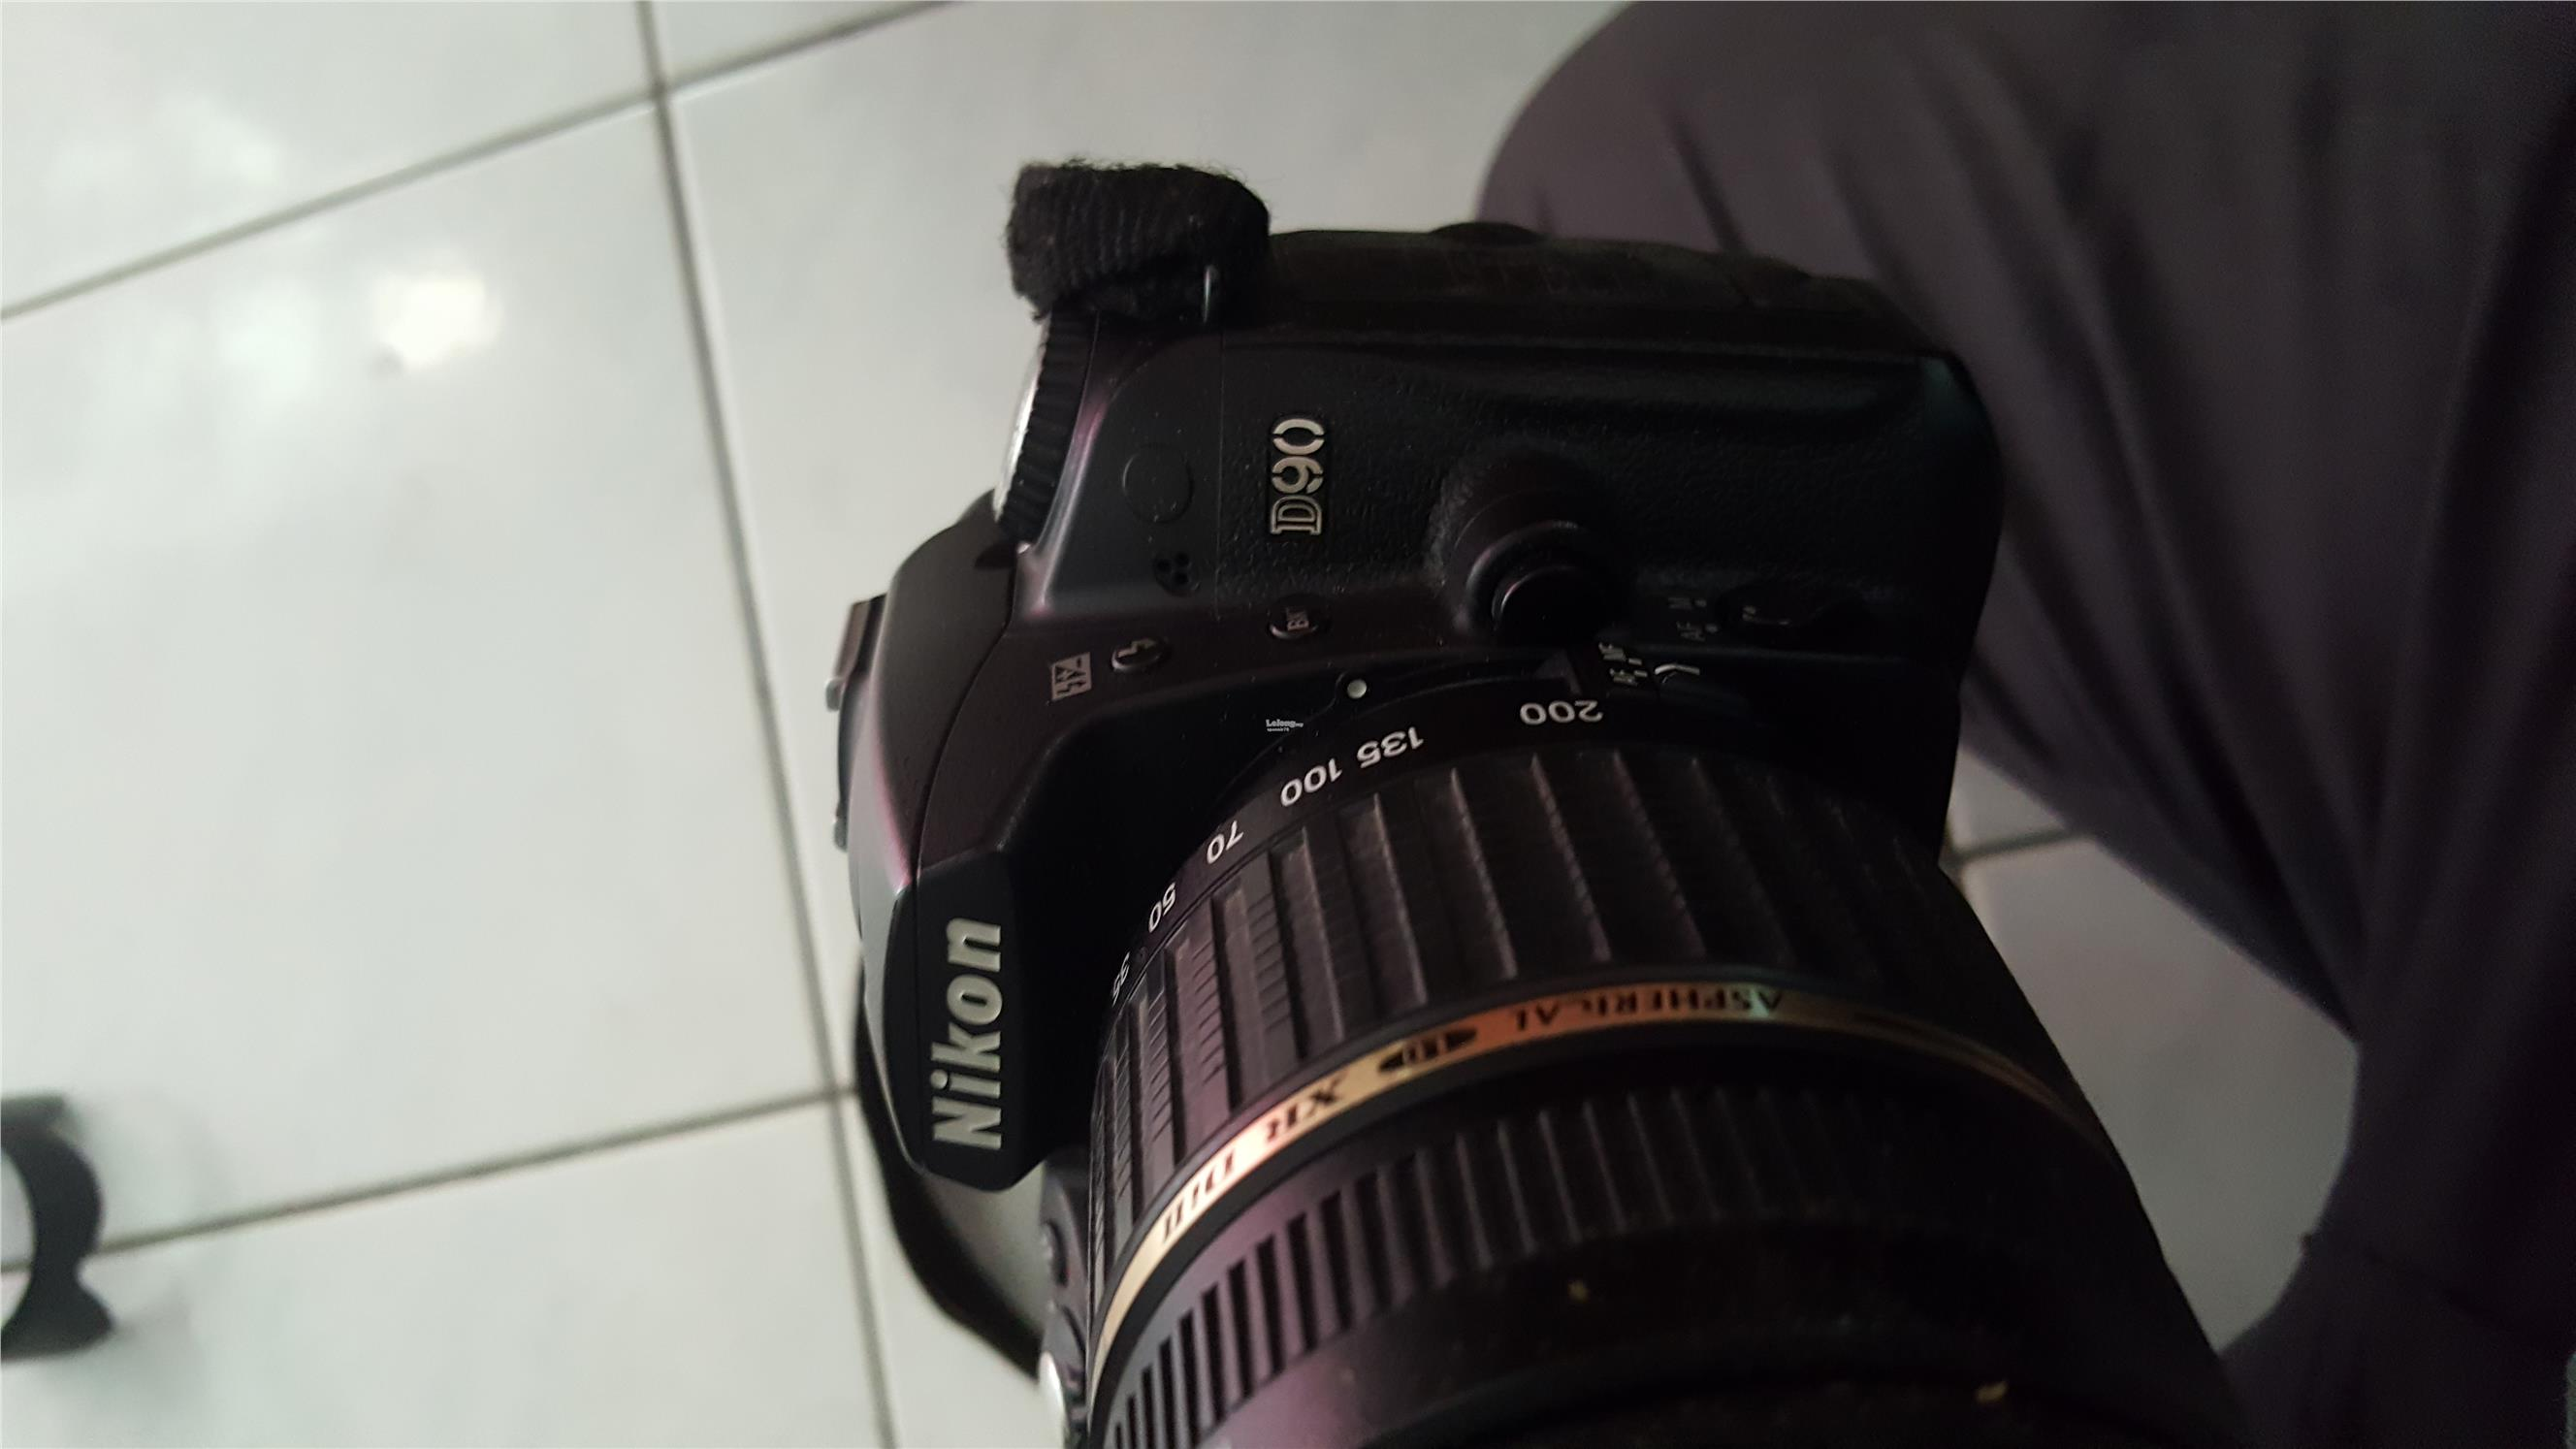 Used Nikon D90 Camera, Flash and Lenses